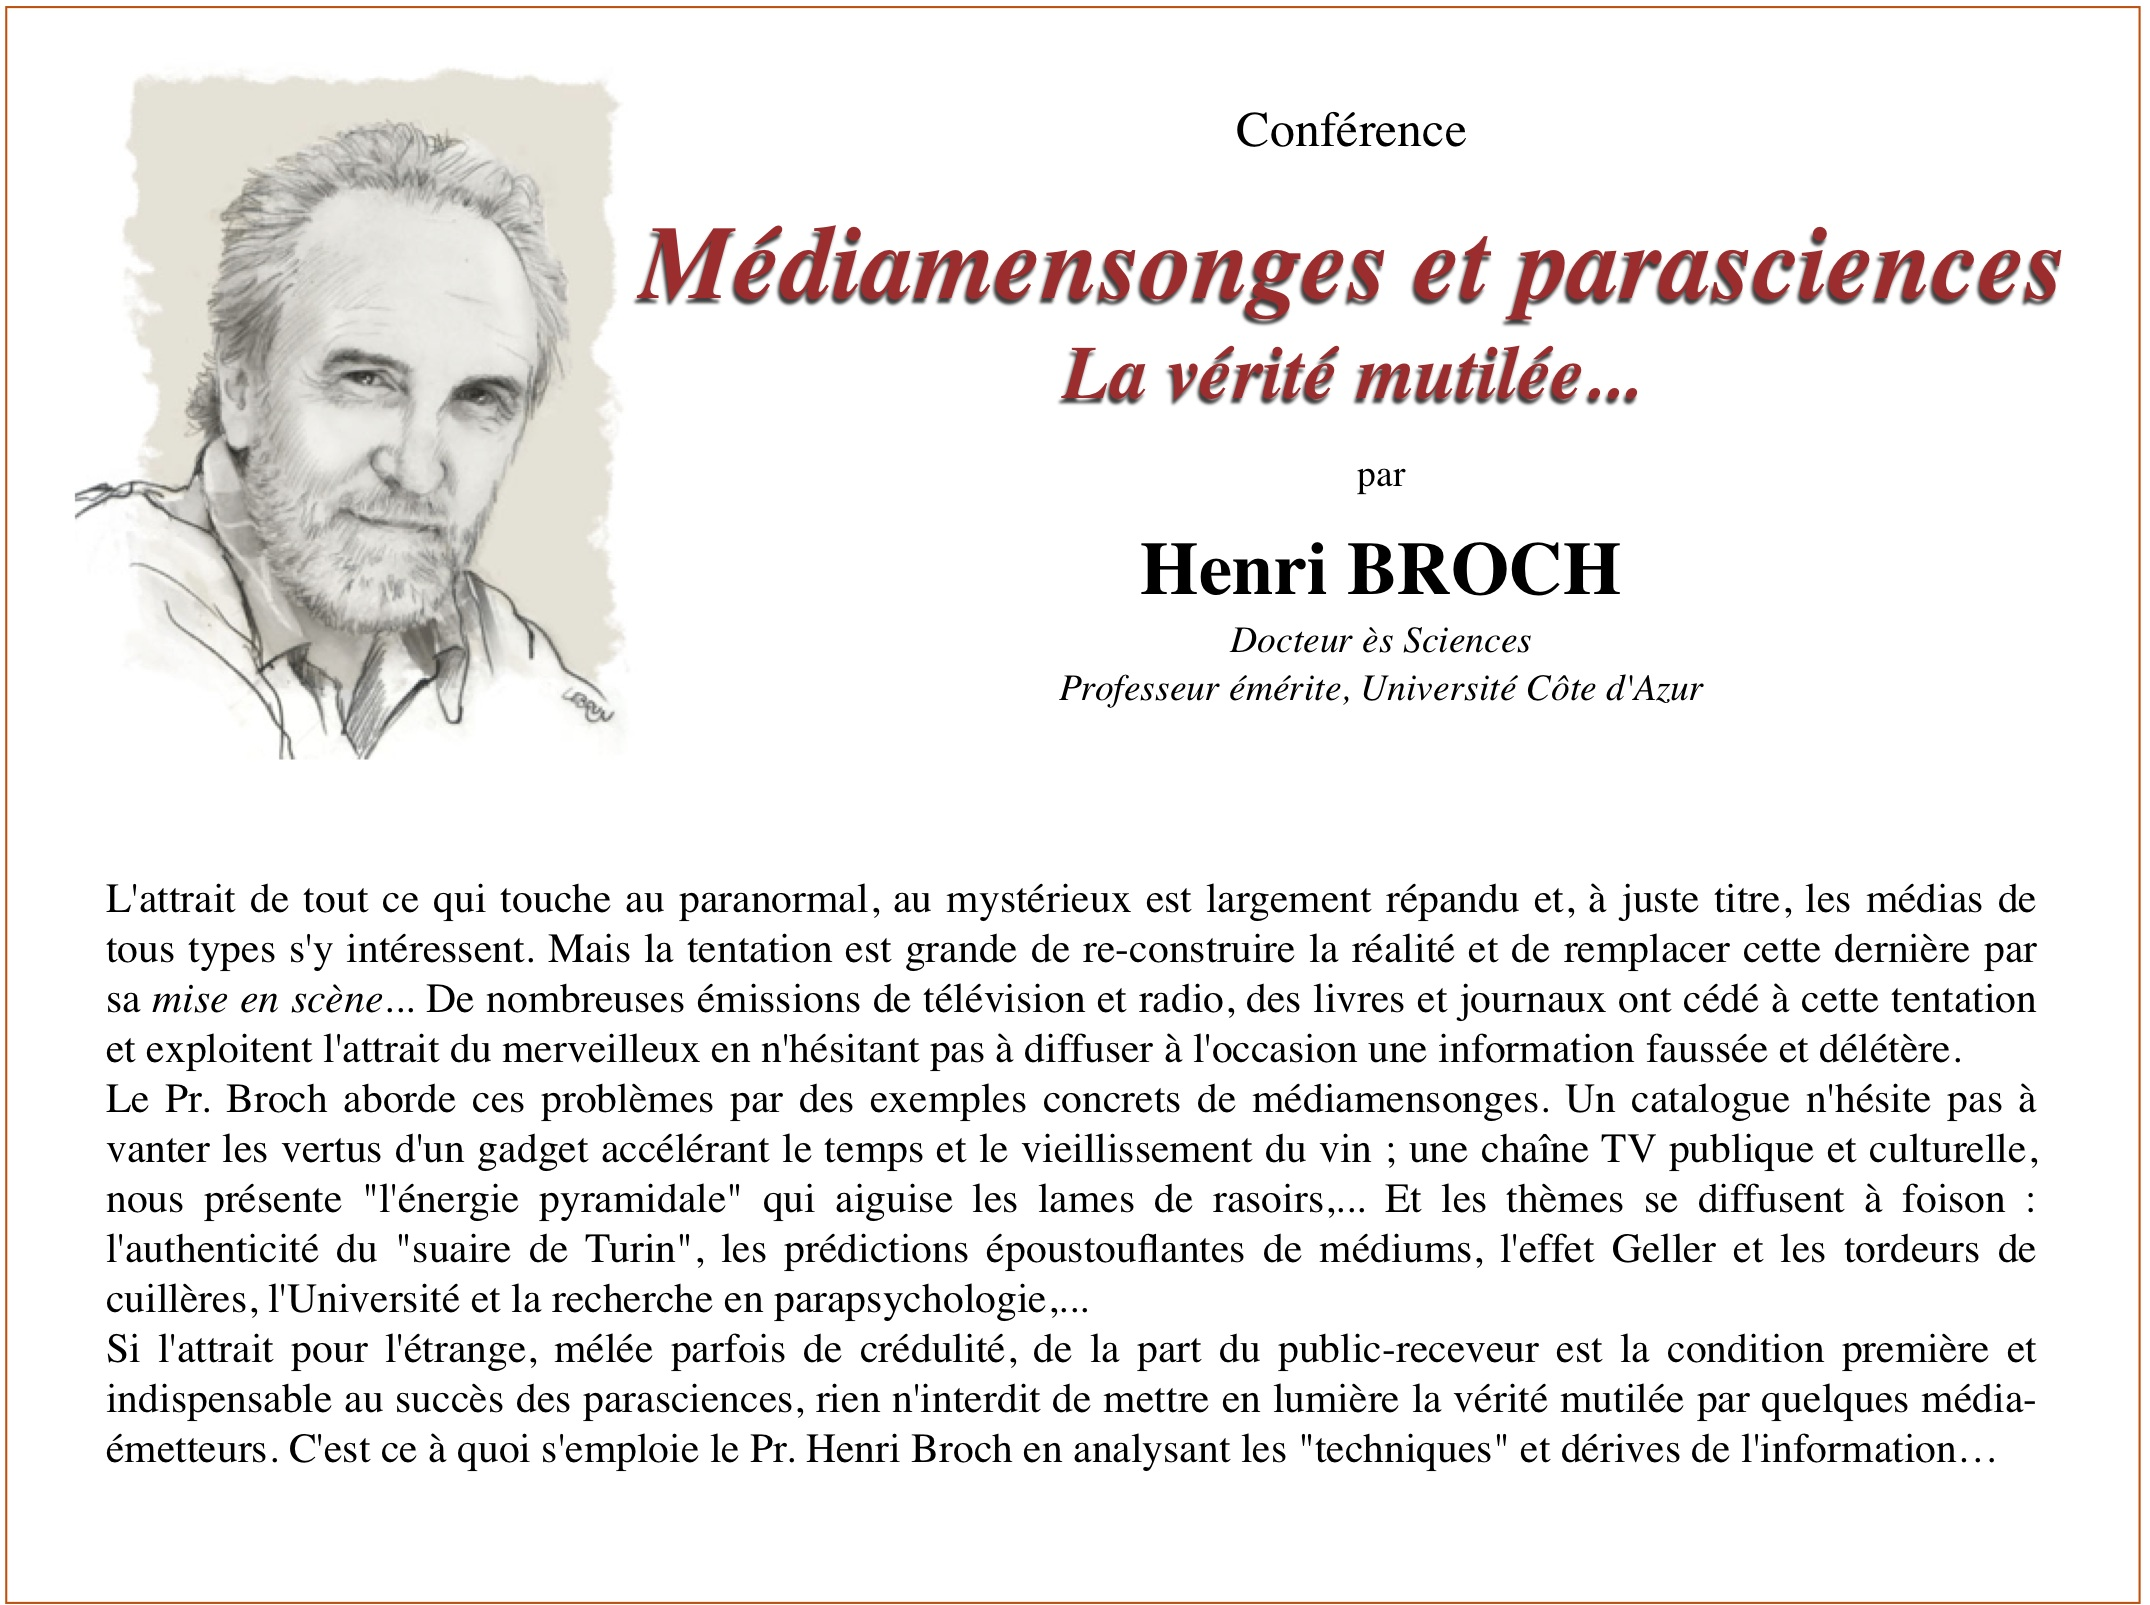 H.Broch-Mediamensonges